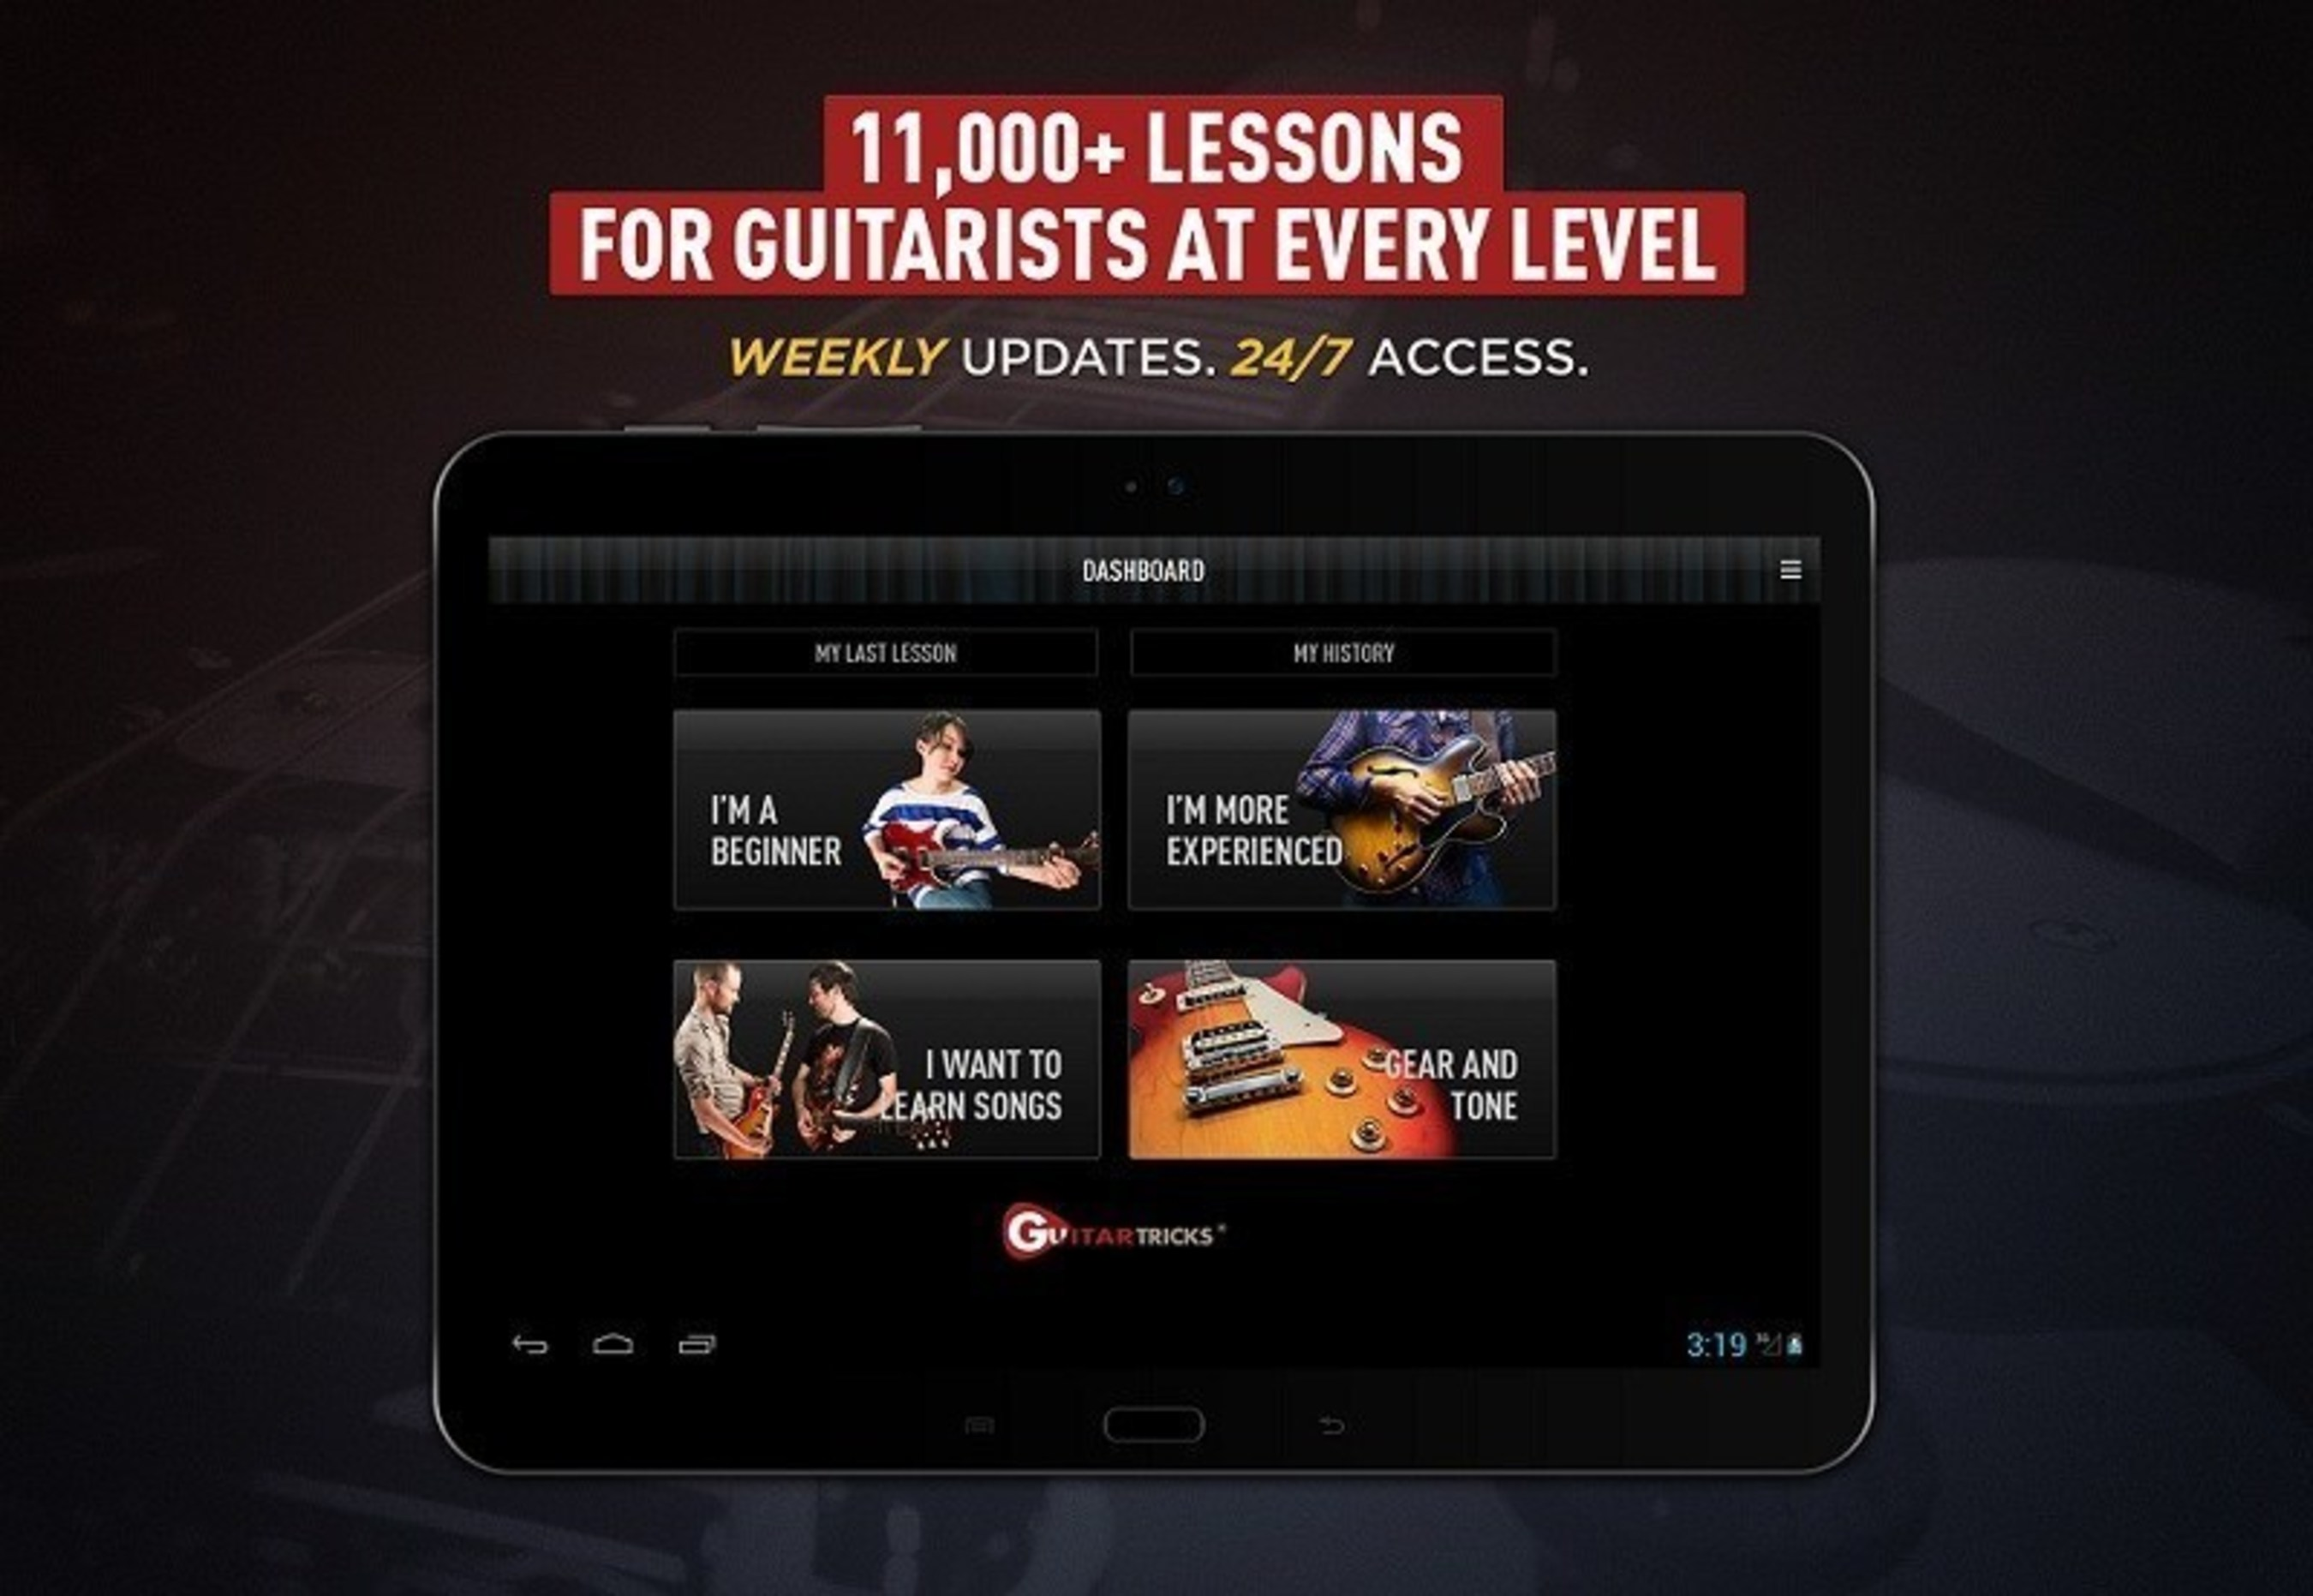 New Guitar Lesson App Offers Most Lessons in the App Store